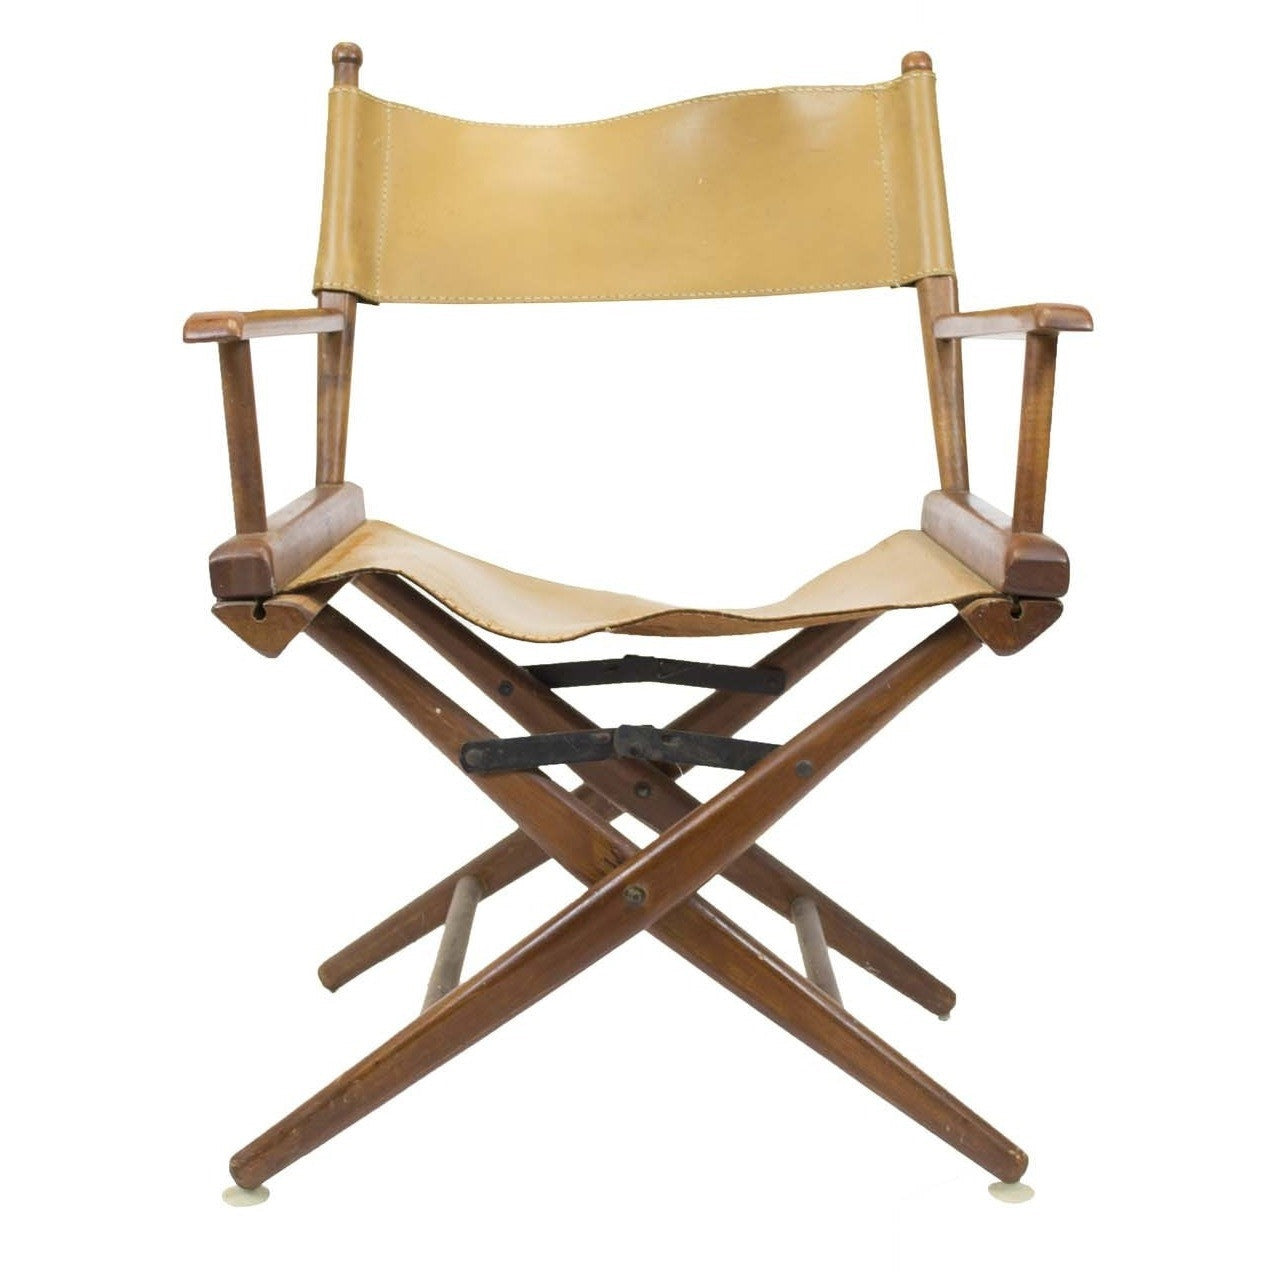 Vintage Mid-Century Modern Folding Director's Chair - Avery, Teach and Co.